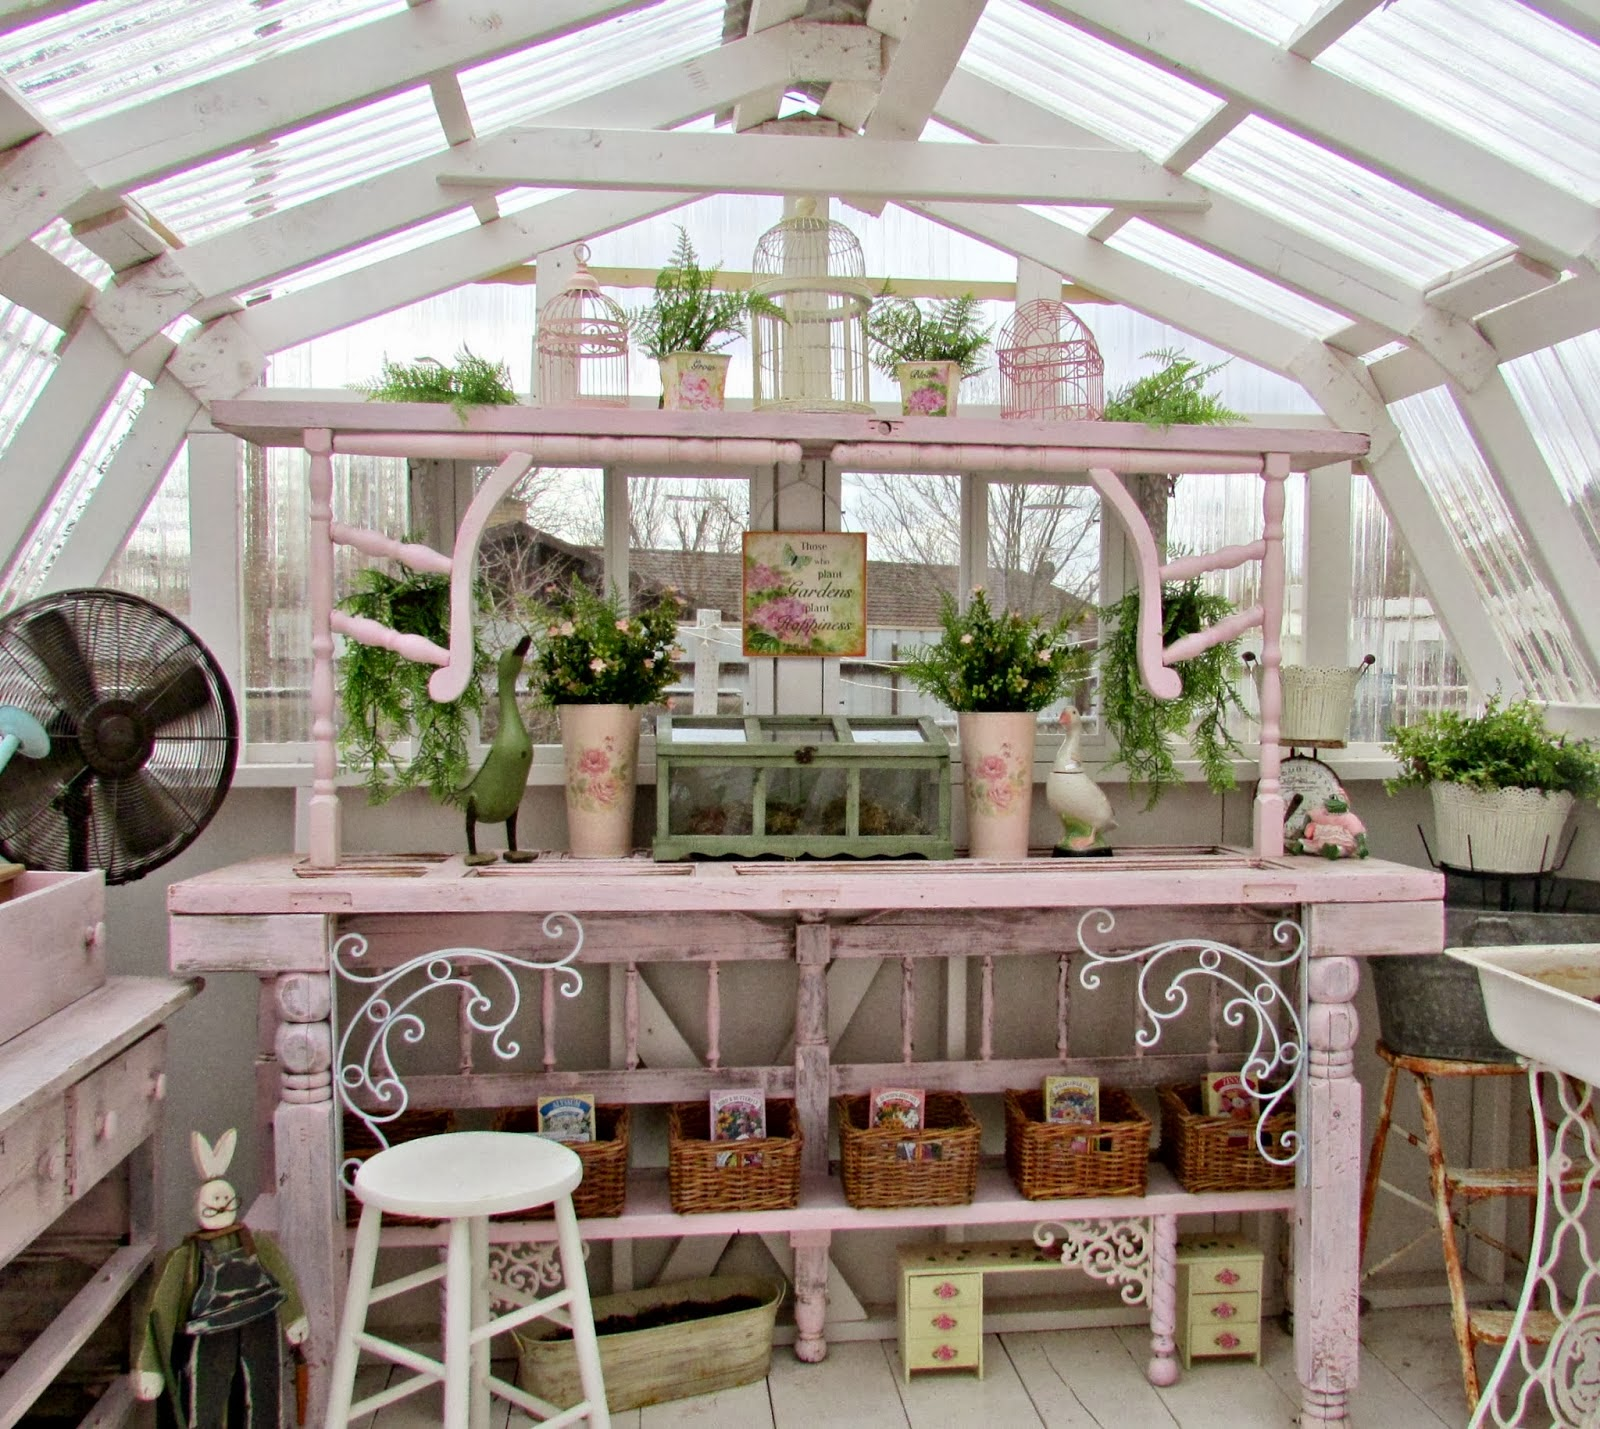 Penny's Treasures shared her Potting Table for New Greenhouse Featured at One More Time Events.com #potting bench